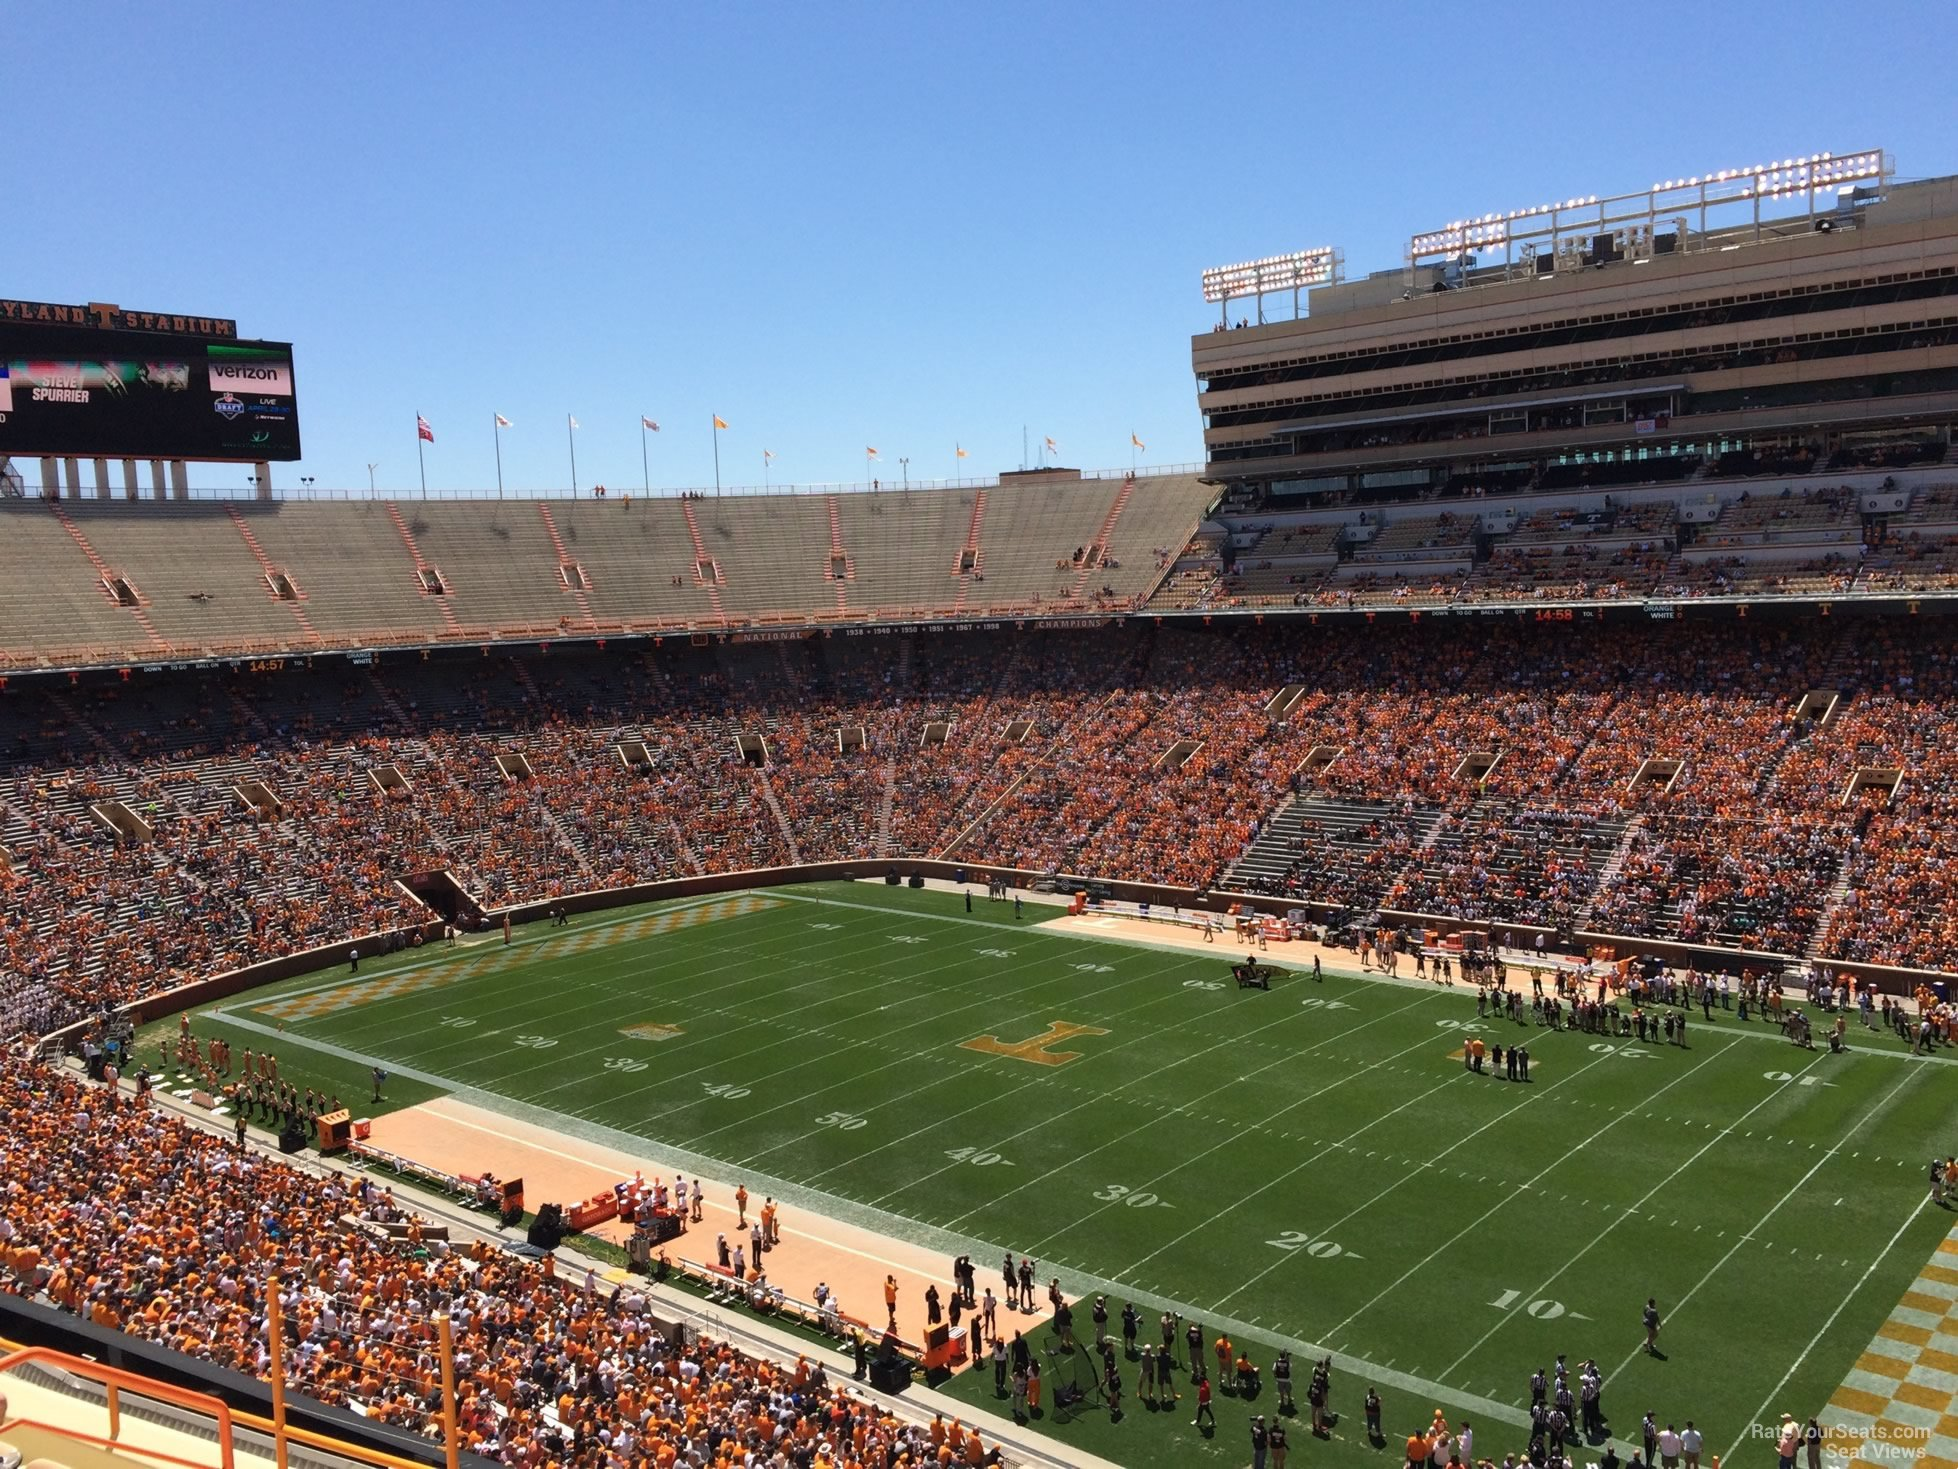 Section Z14 seat view